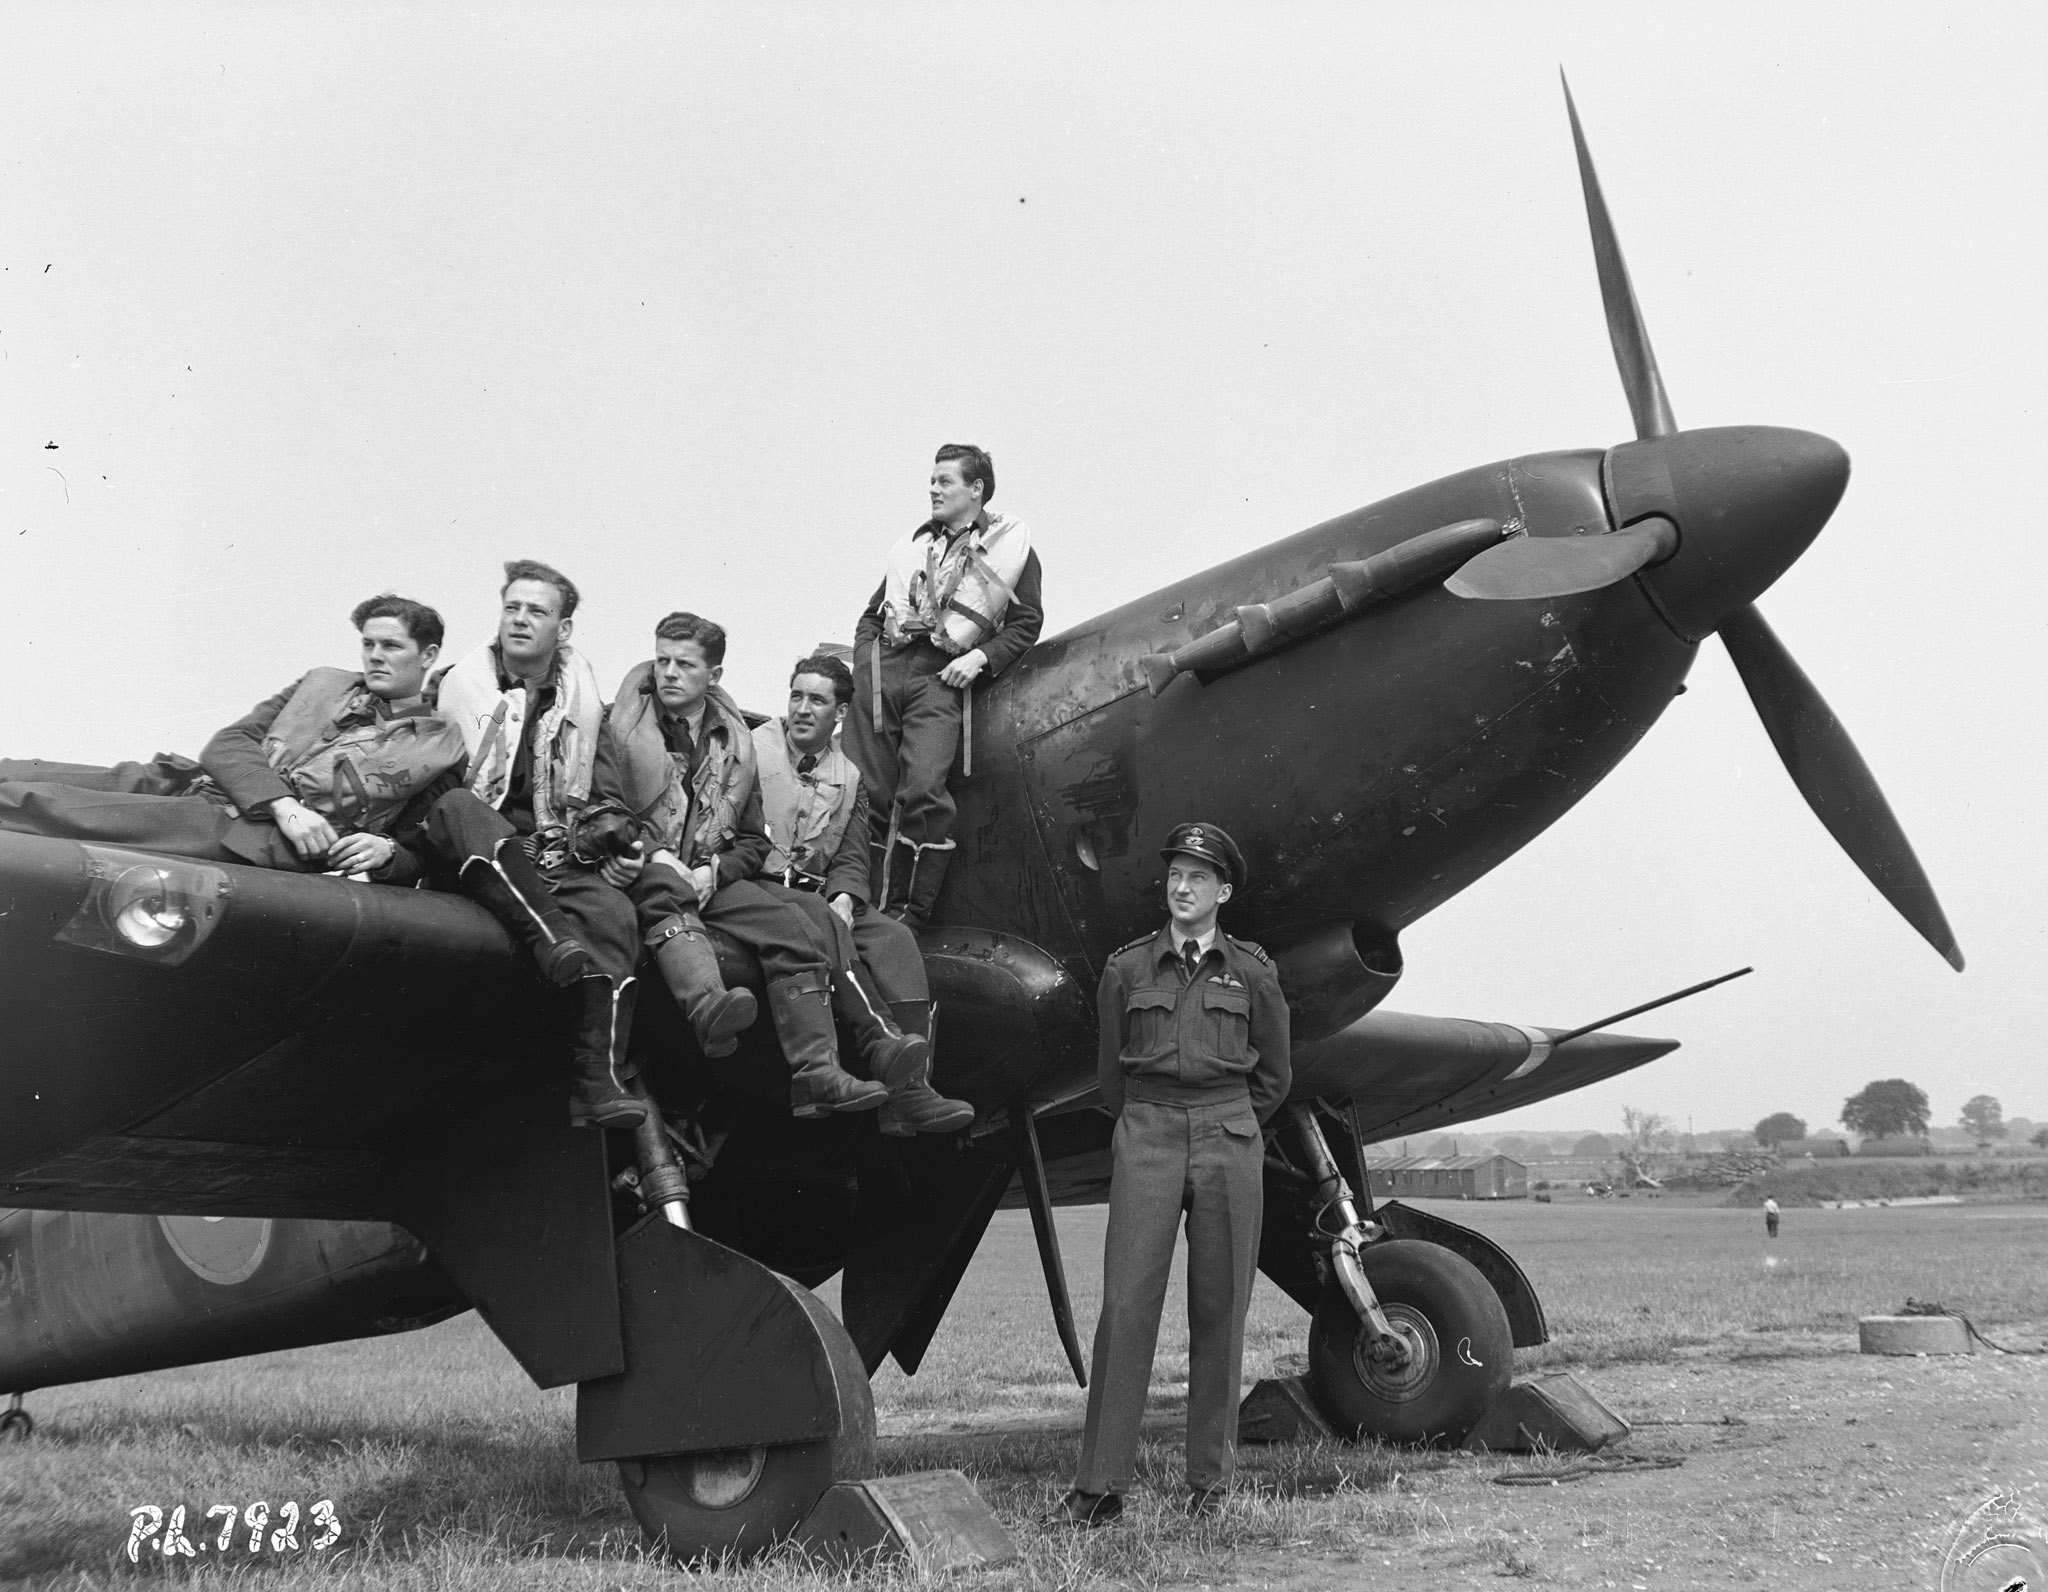 "The original caption of this June 25, 1942, photo reads: ""In many of the Royal Air Force squadrons overseas, groups of Canadians, graduates of the British Commonwealth Air Training Plan, will be found. Here is a typical group with an RAF fighter squadron. From left to right, they are: Pilot Officer R.A. Dunn of Lyons Brook and Pictou, Nova Scotia; Flight Sergeant F.S. Marsh of Montreal; Flight Sergeant Bill Sanders, of Headingley, Manitoba; Flight Sergeant Bill Hane, of Charlow [sic], Nova Scotia, Flight Sergeant E. Ingram of Saint John, New Brunswick; and Squadron Leader Thornton Brown, a member of the RAF."" PHOTO: DND Archives, PL-7923"